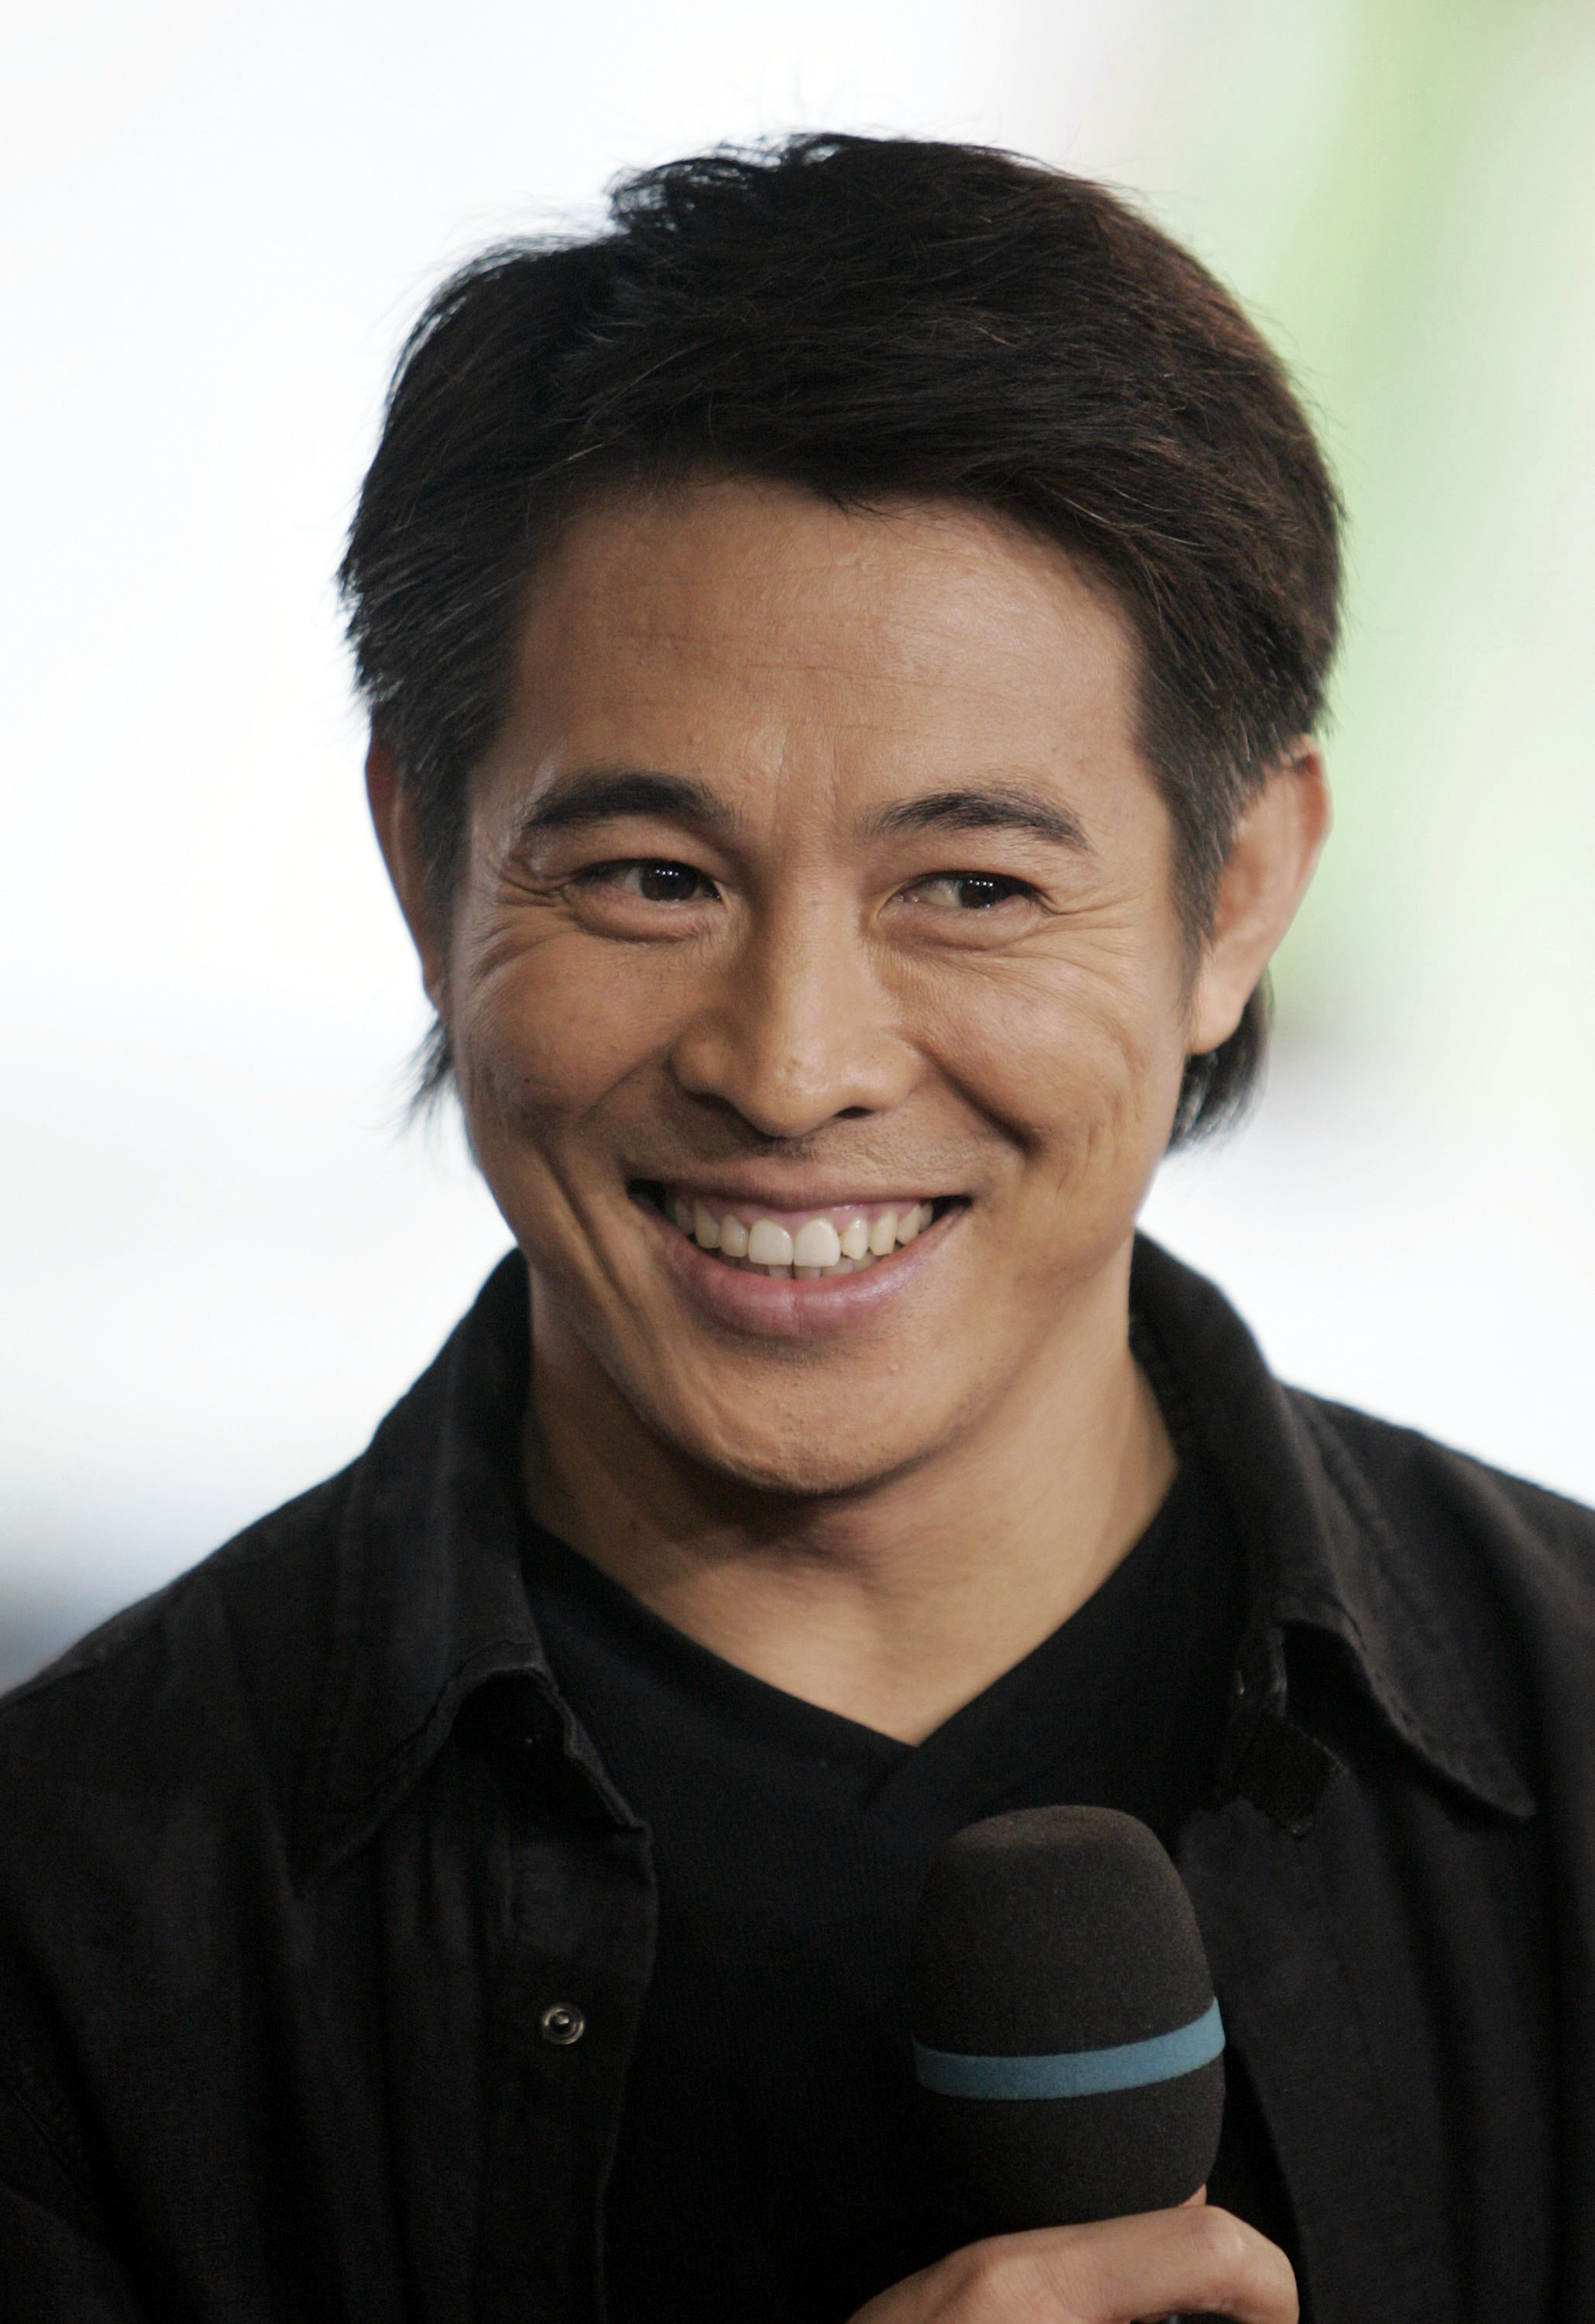 Jet Li Jet Li photo pics wallpaper photo 126514